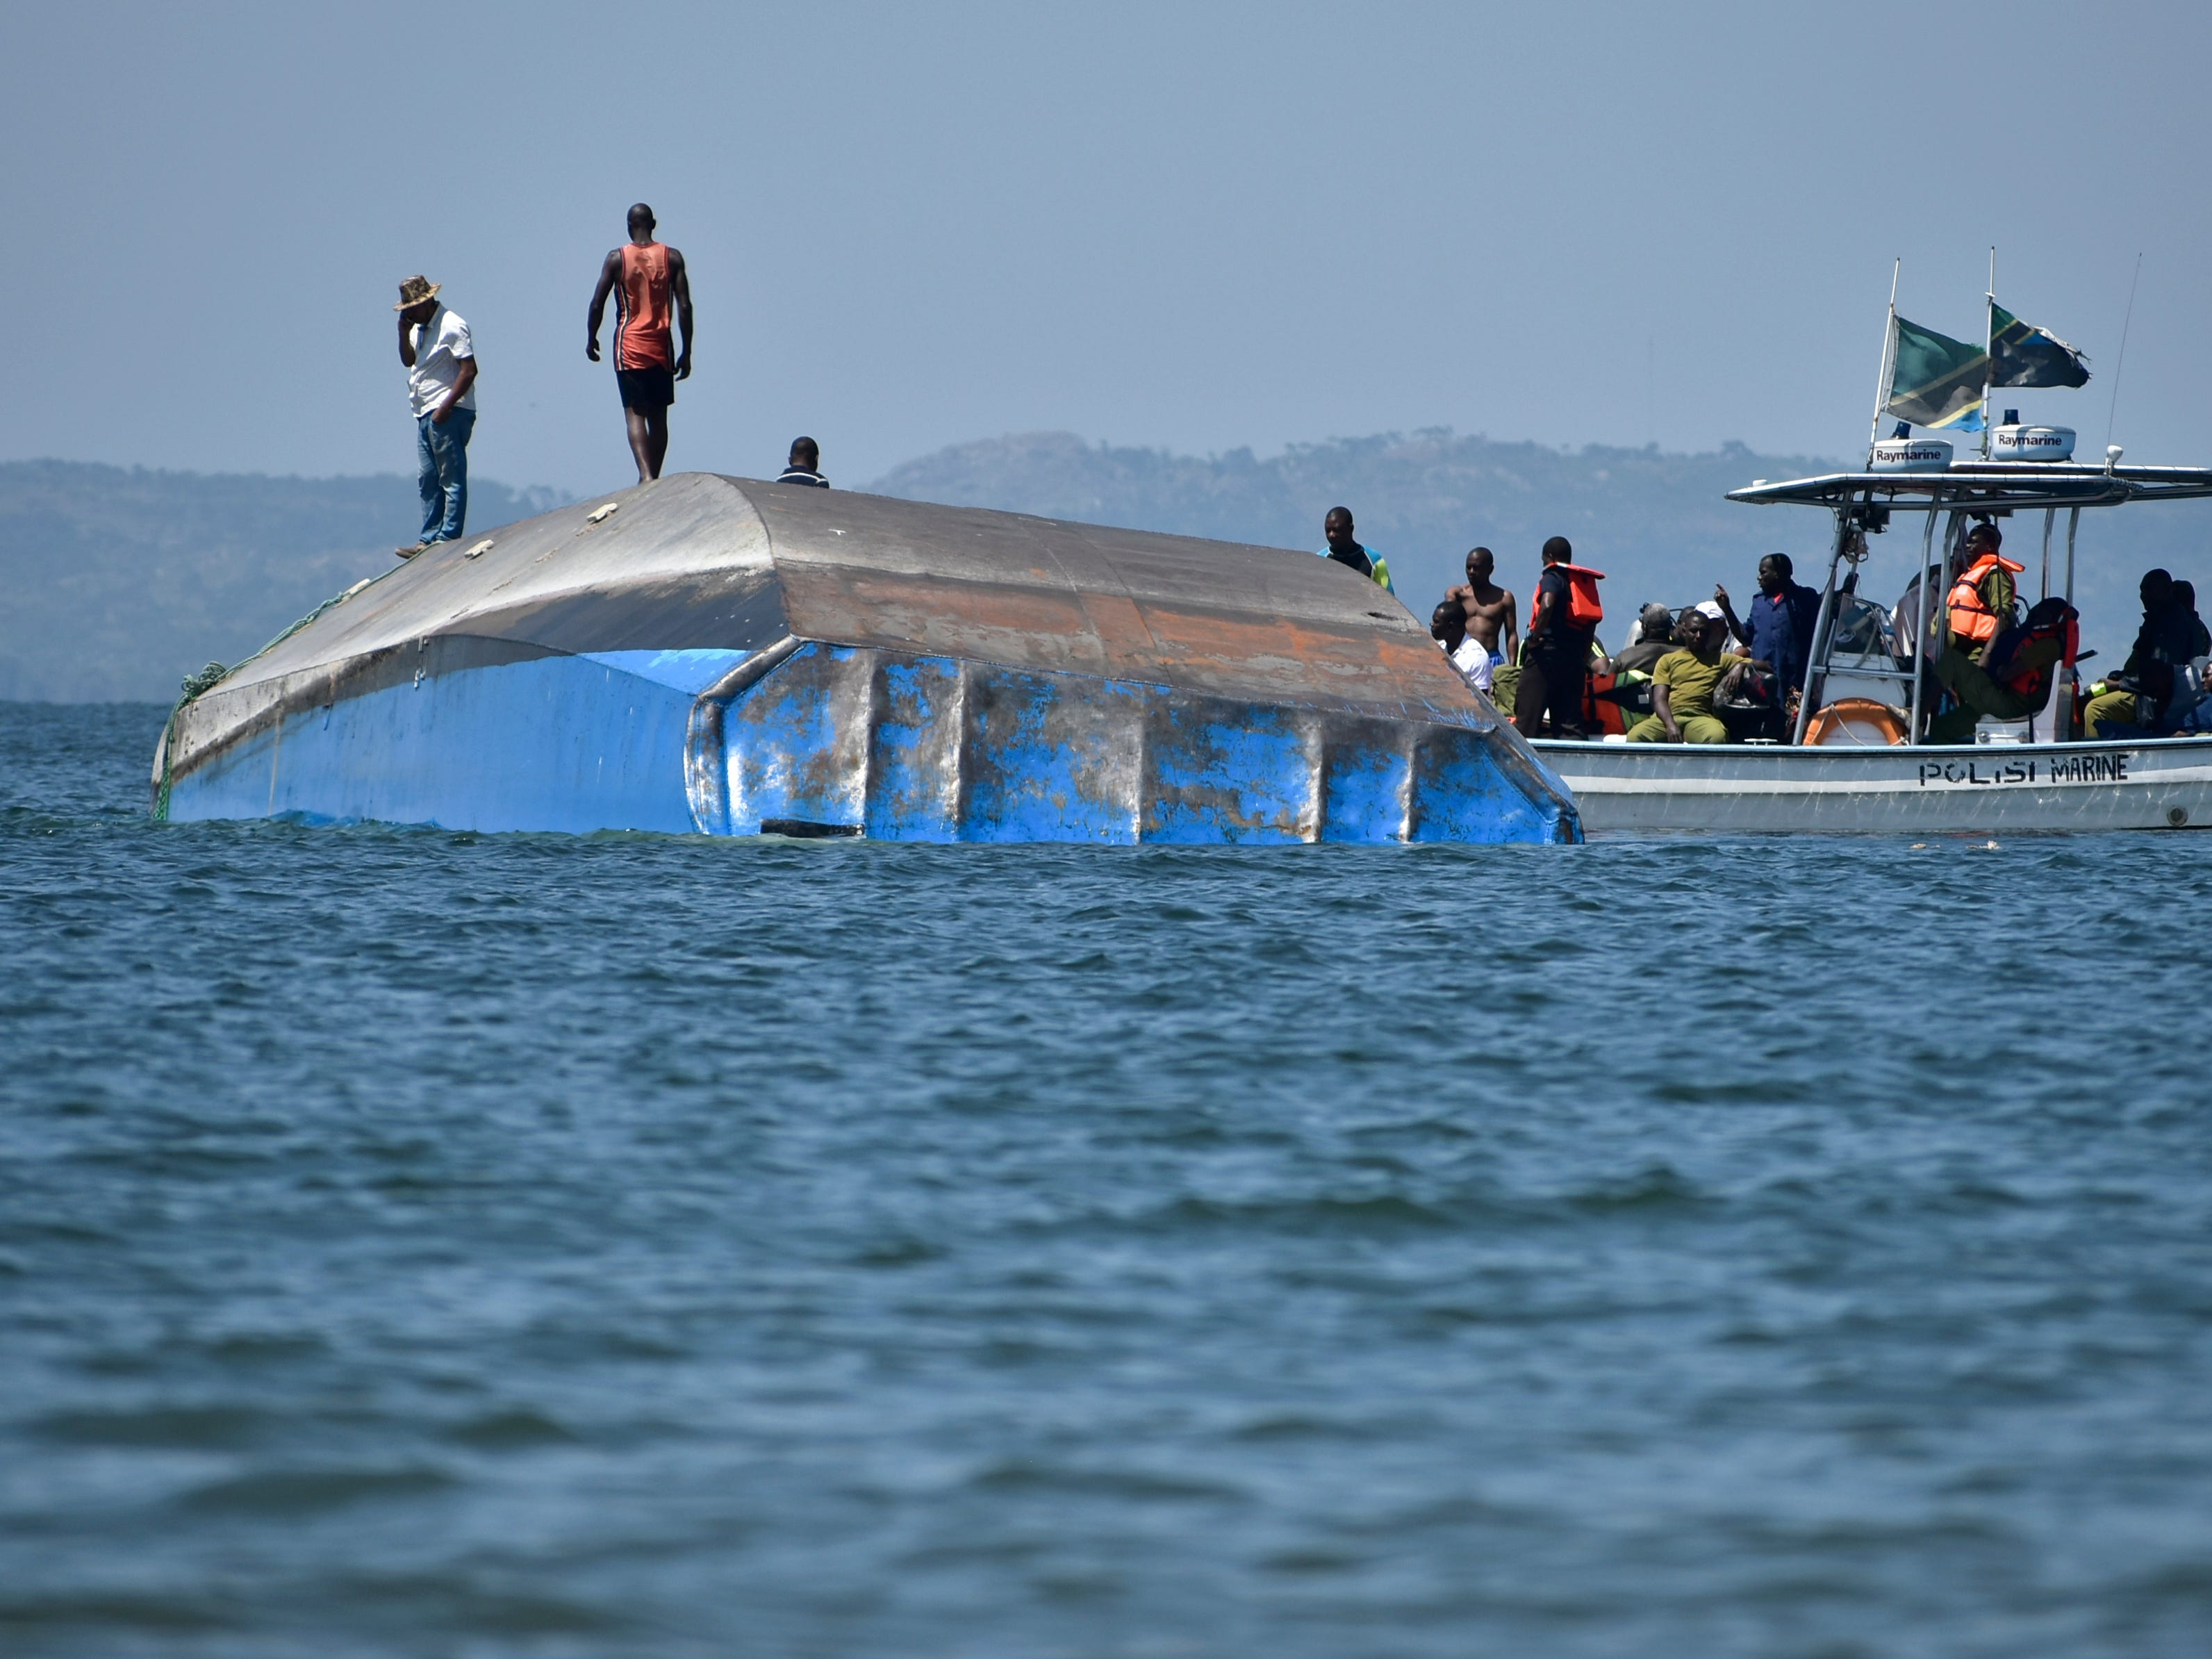 Rescue workers observe the capsized MV Nyerere passenger ferry as it lies upturned near Ukara Island, Tanzania Sunday, Sept. 23, 2018. Burials started Sunday of the more than 200 people who died when the ferry capsized on Lake Victoria, while the country's Defense Minister said no further survivors were likely to be found and search efforts had ended.